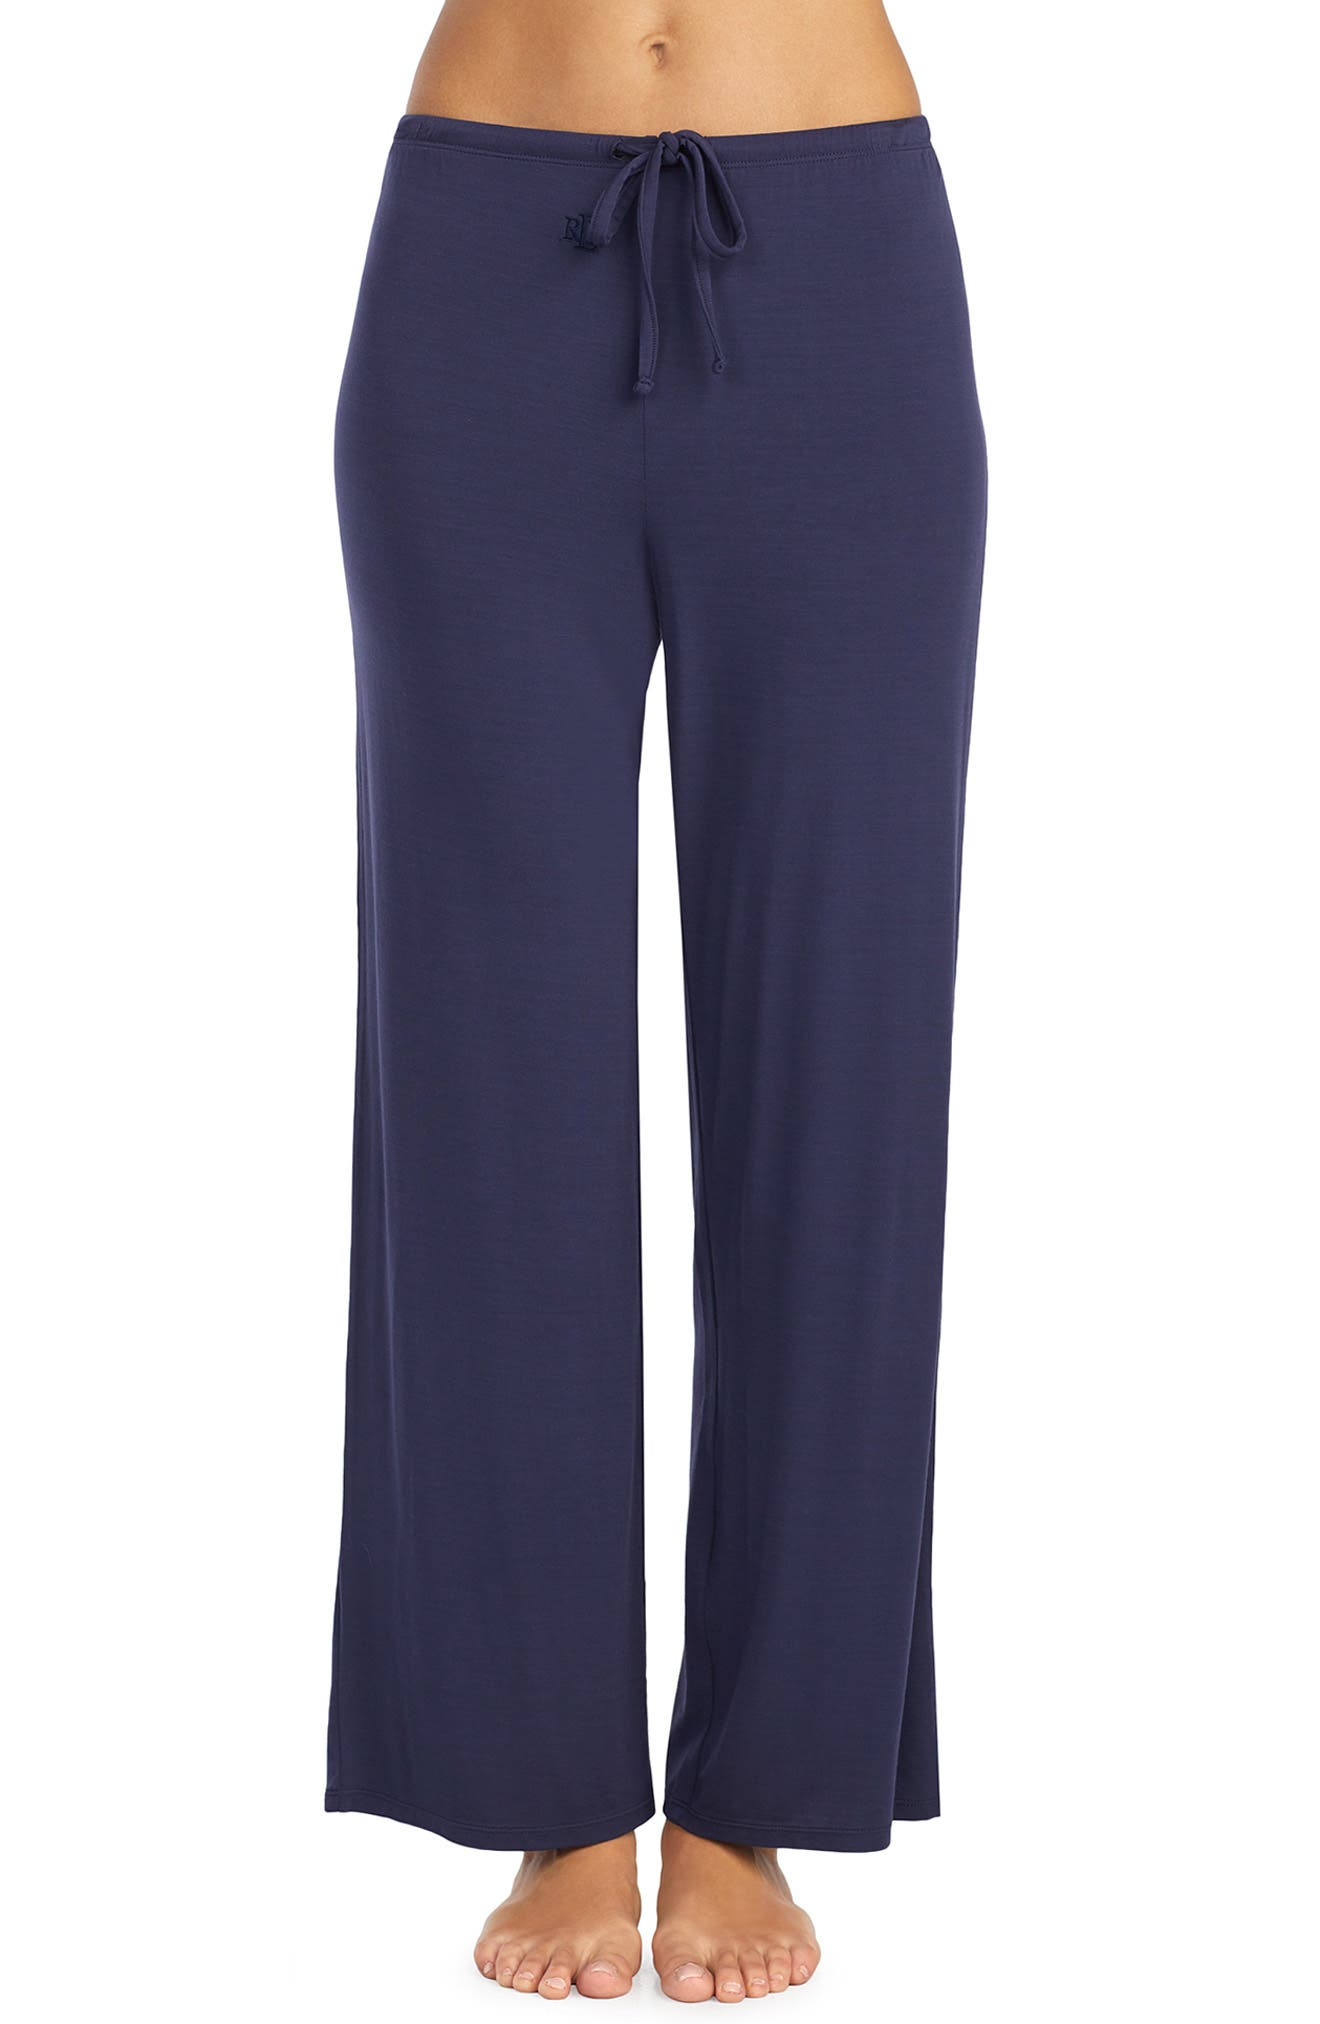 LAUREN RALPH LAUREN,                             Pajama Pants,                             Main thumbnail 1, color,                             NAVY